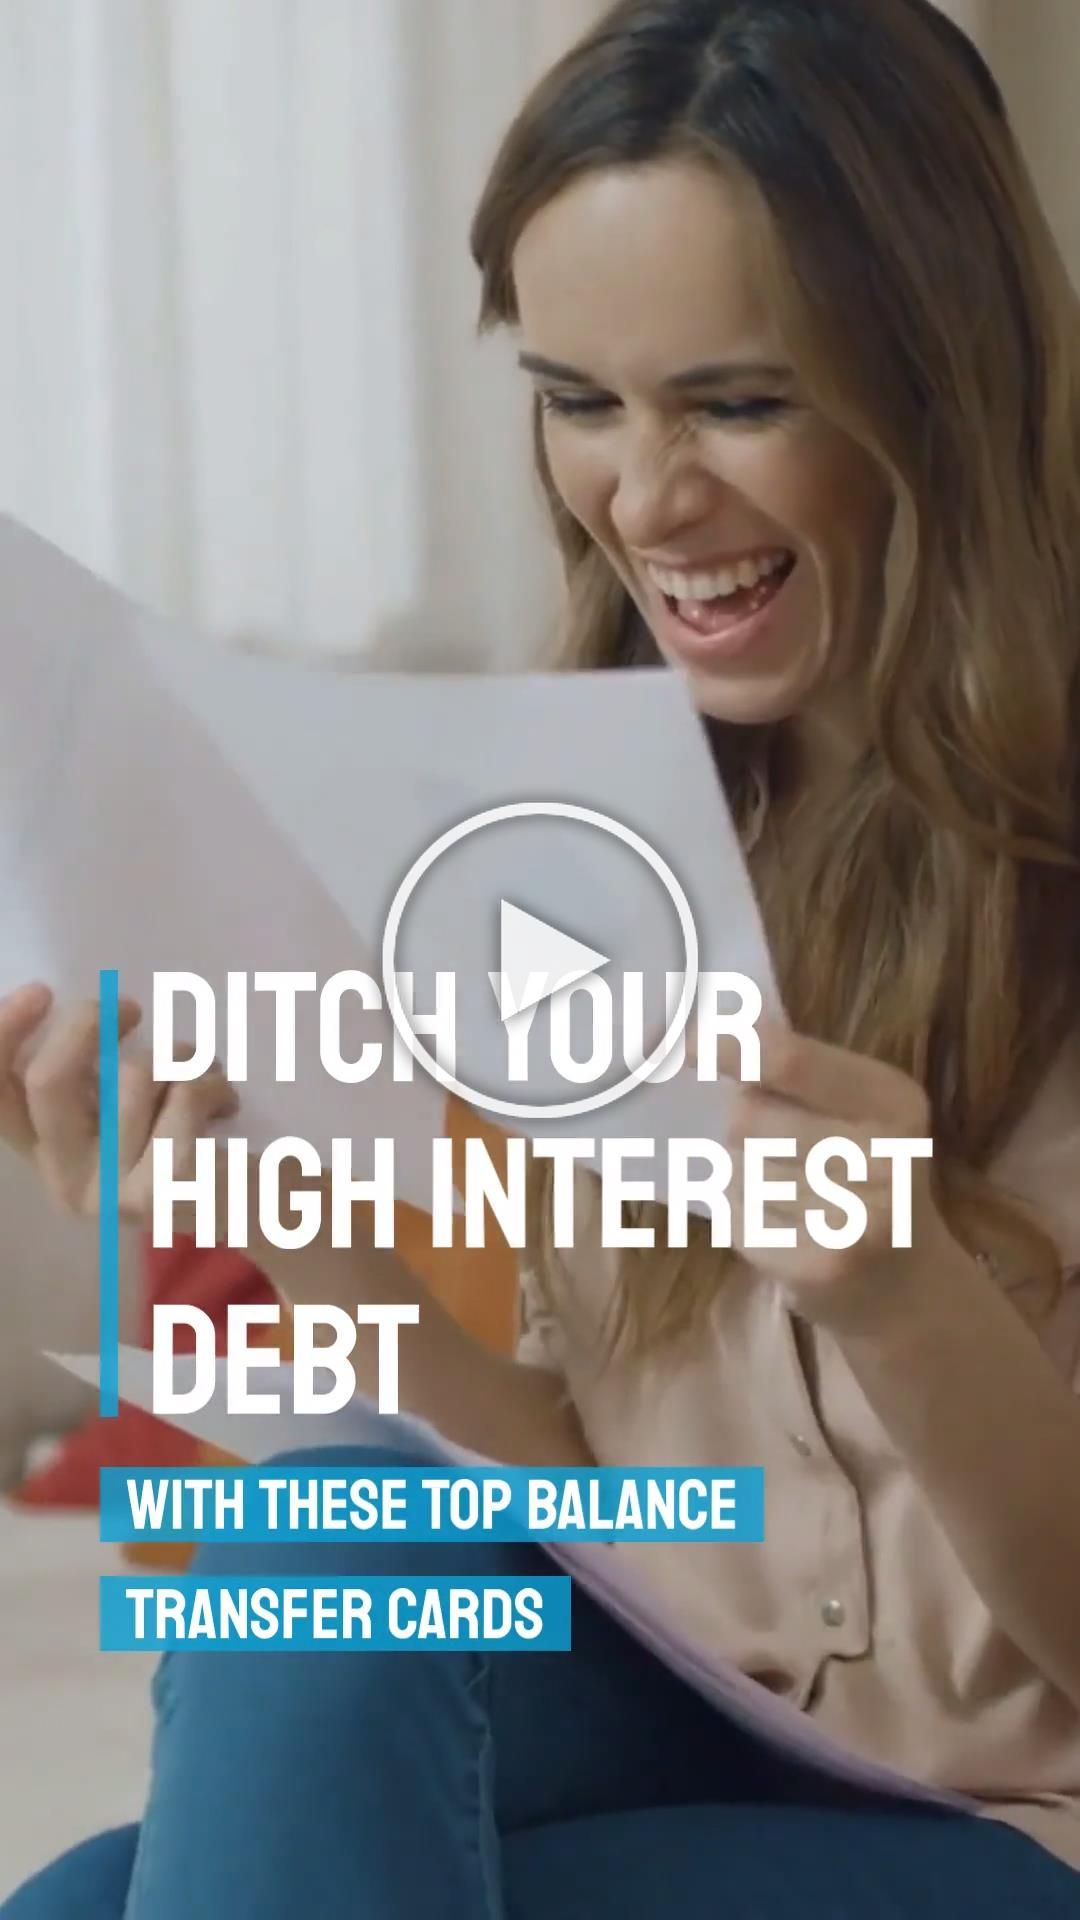 Balance transfer credit cards are quickly the